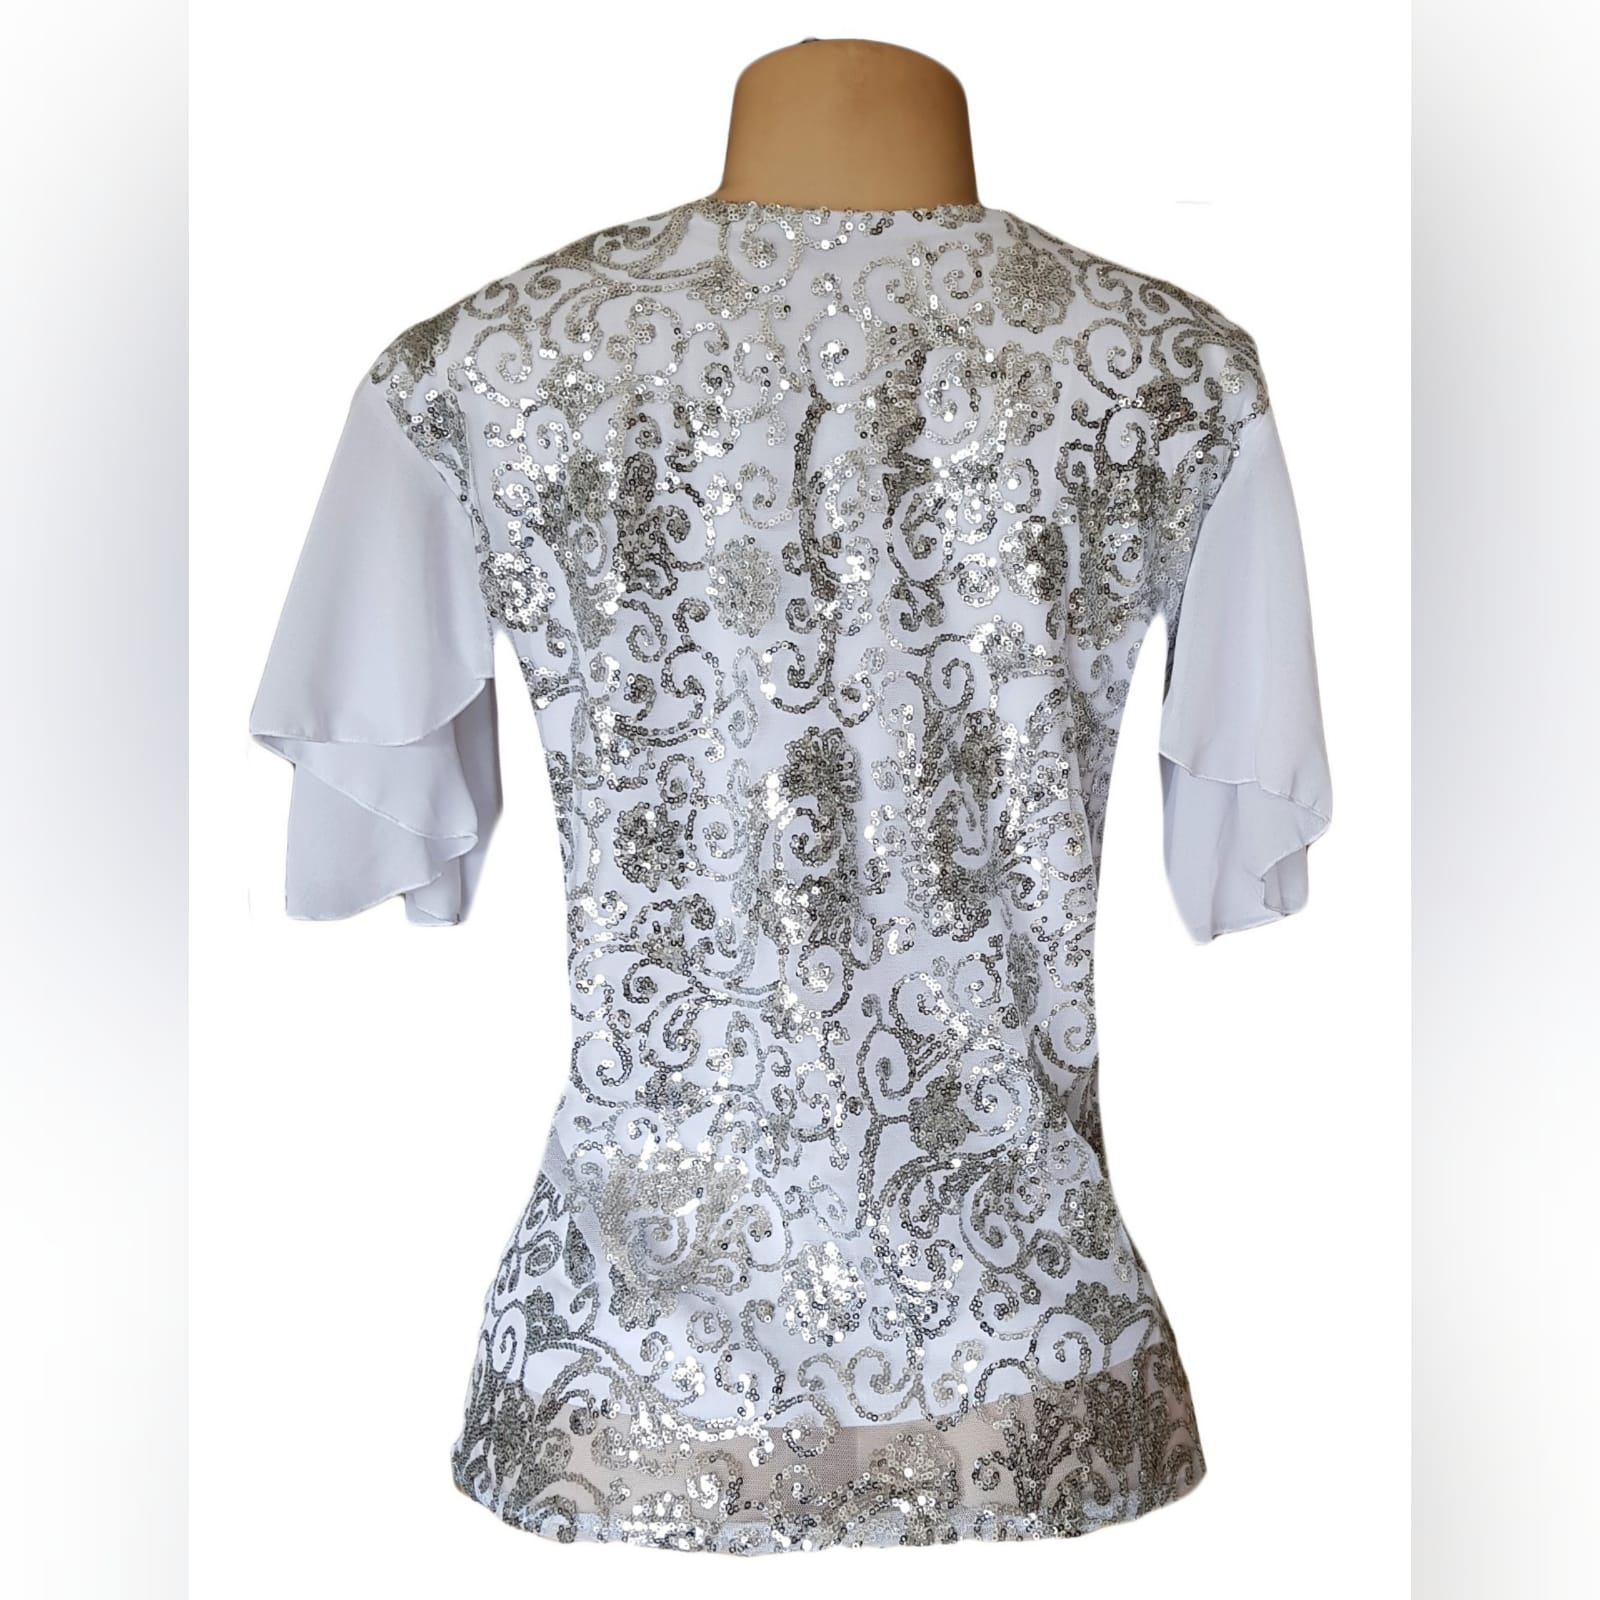 White patterned sequins smart casual top 3 white patterned sequins smart casual top with a v neckline and short chiffon flowy sleeves